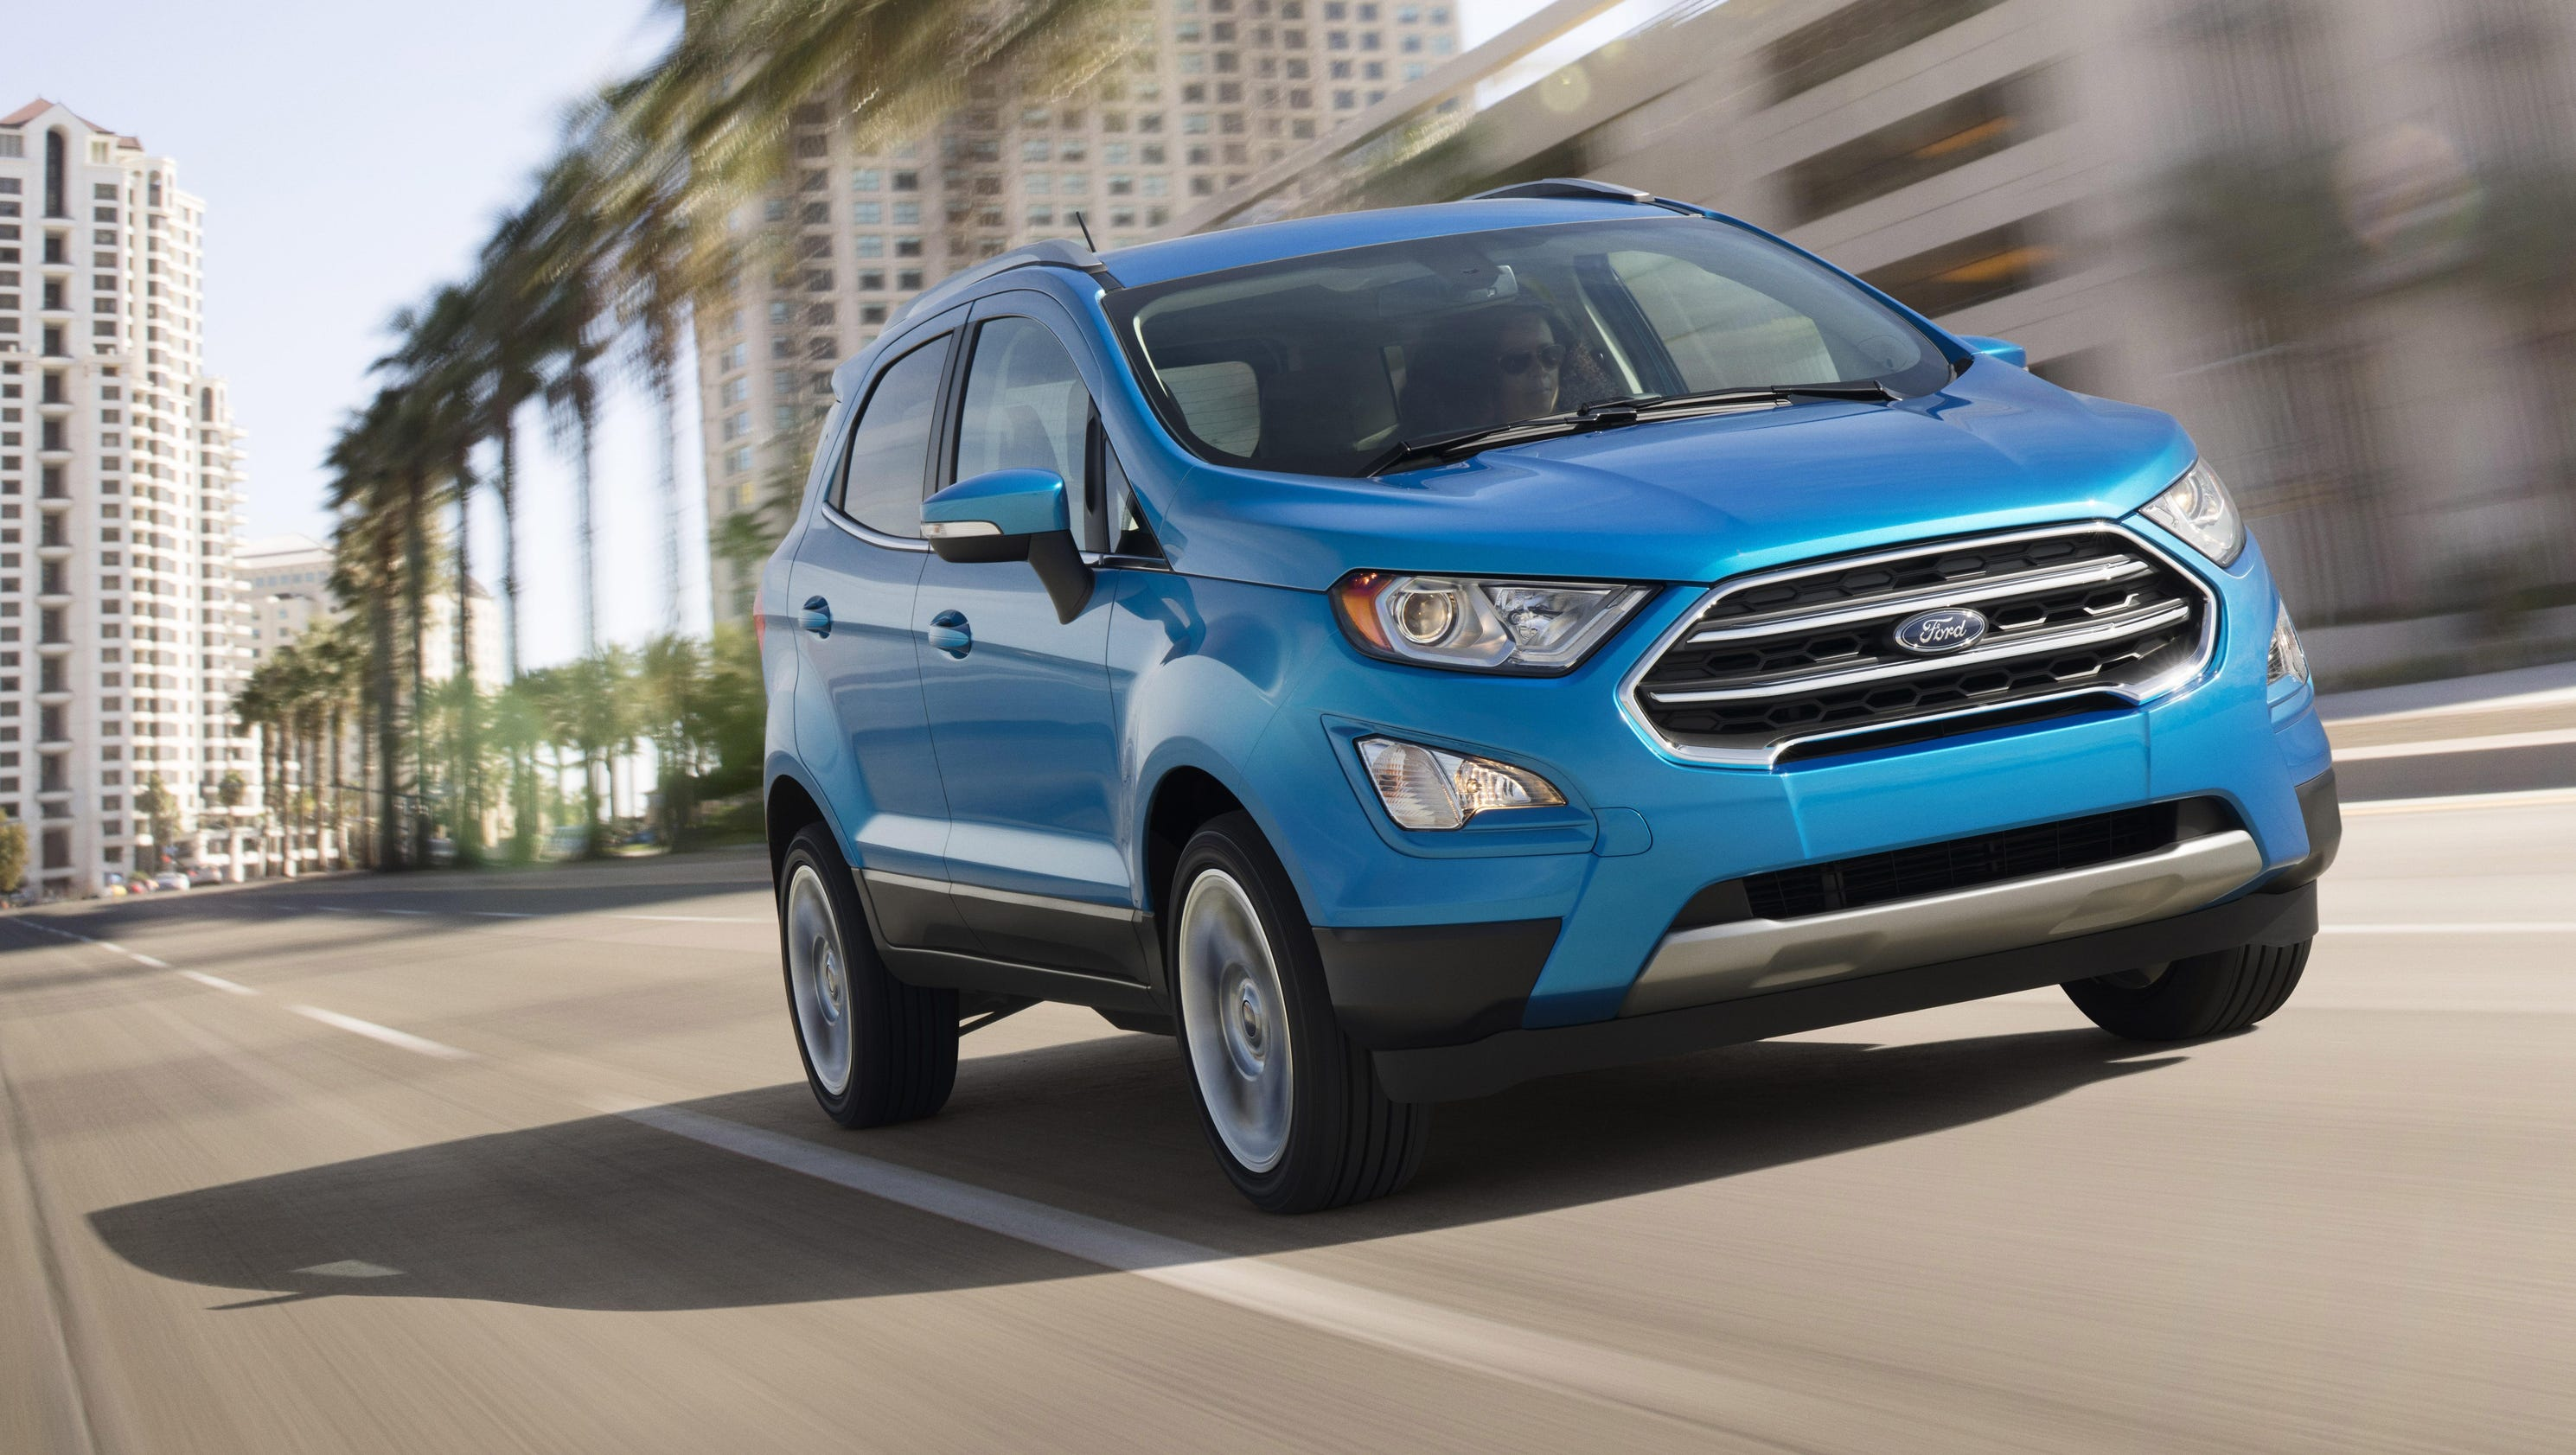 Ford Motor Company Stock Quote Leaning On Trucks Suvs Not As Risky For Ford As It Was Decade Ago